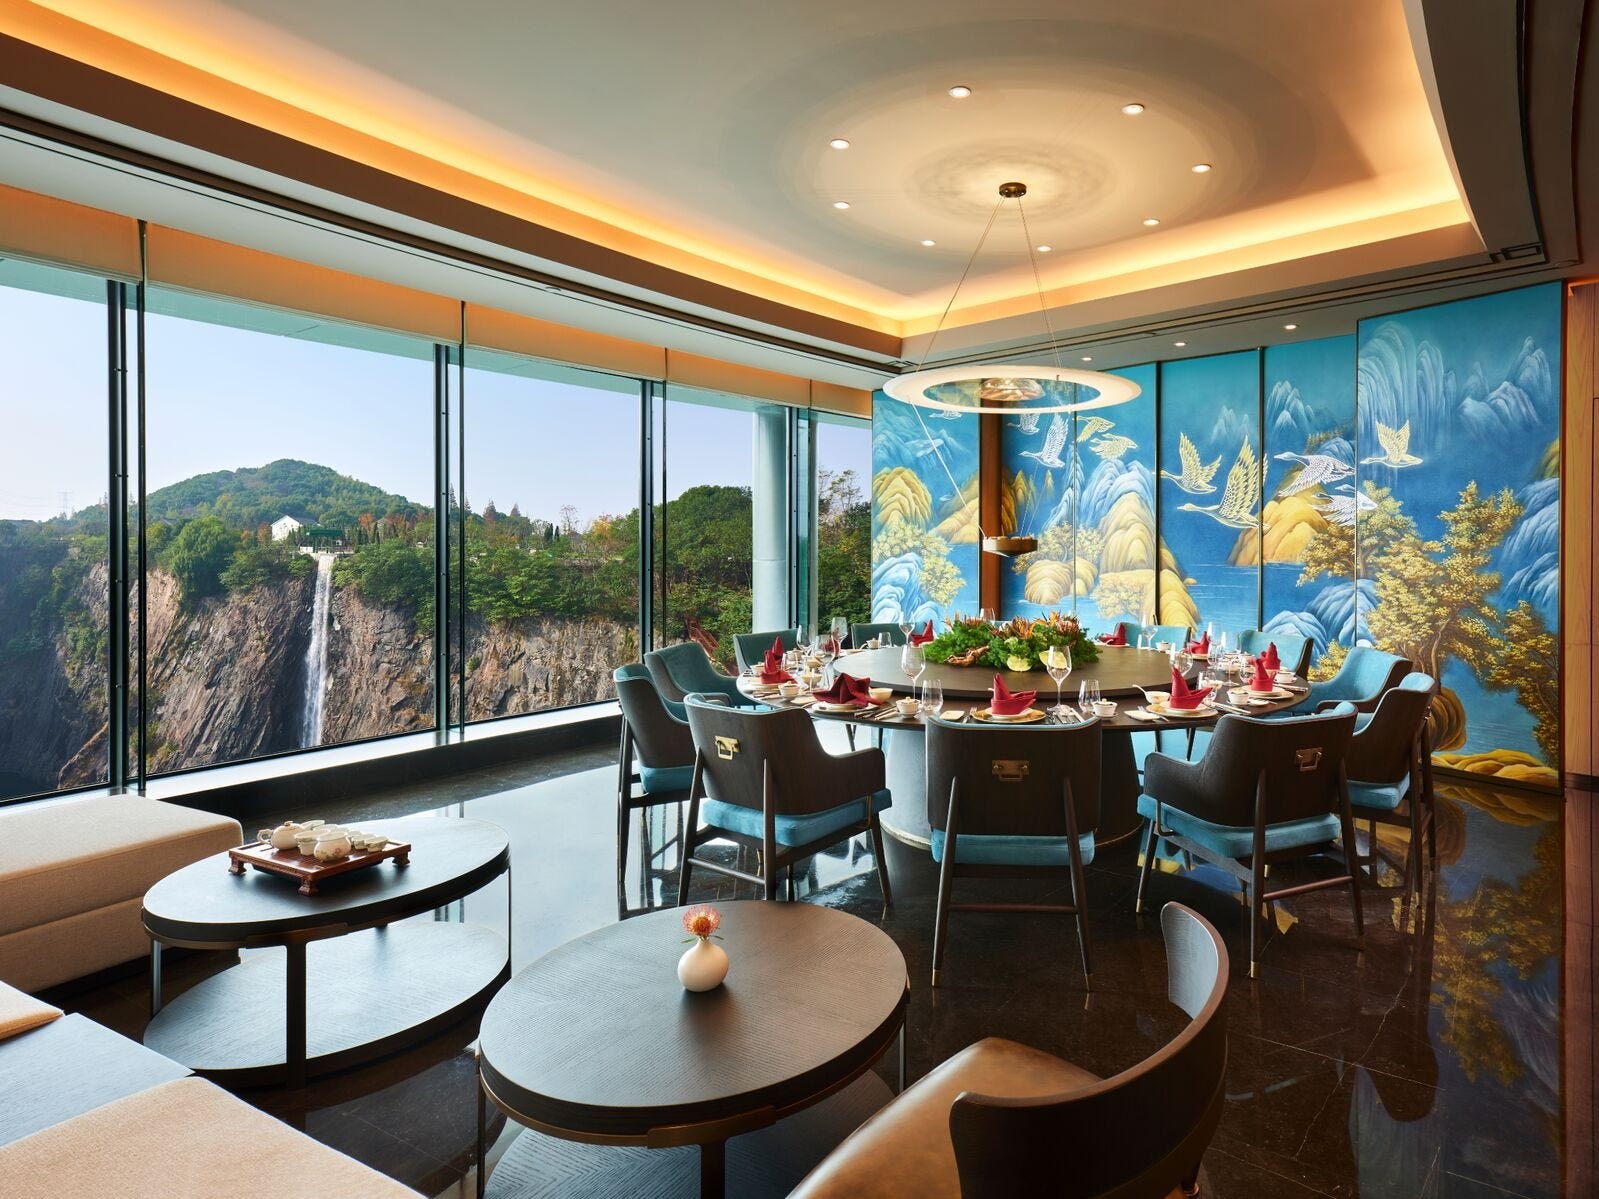 Among the many dining options here is Cai Feng Lou, the Chinese restaurant with beautiful quarry views and a series of private dining rooms.